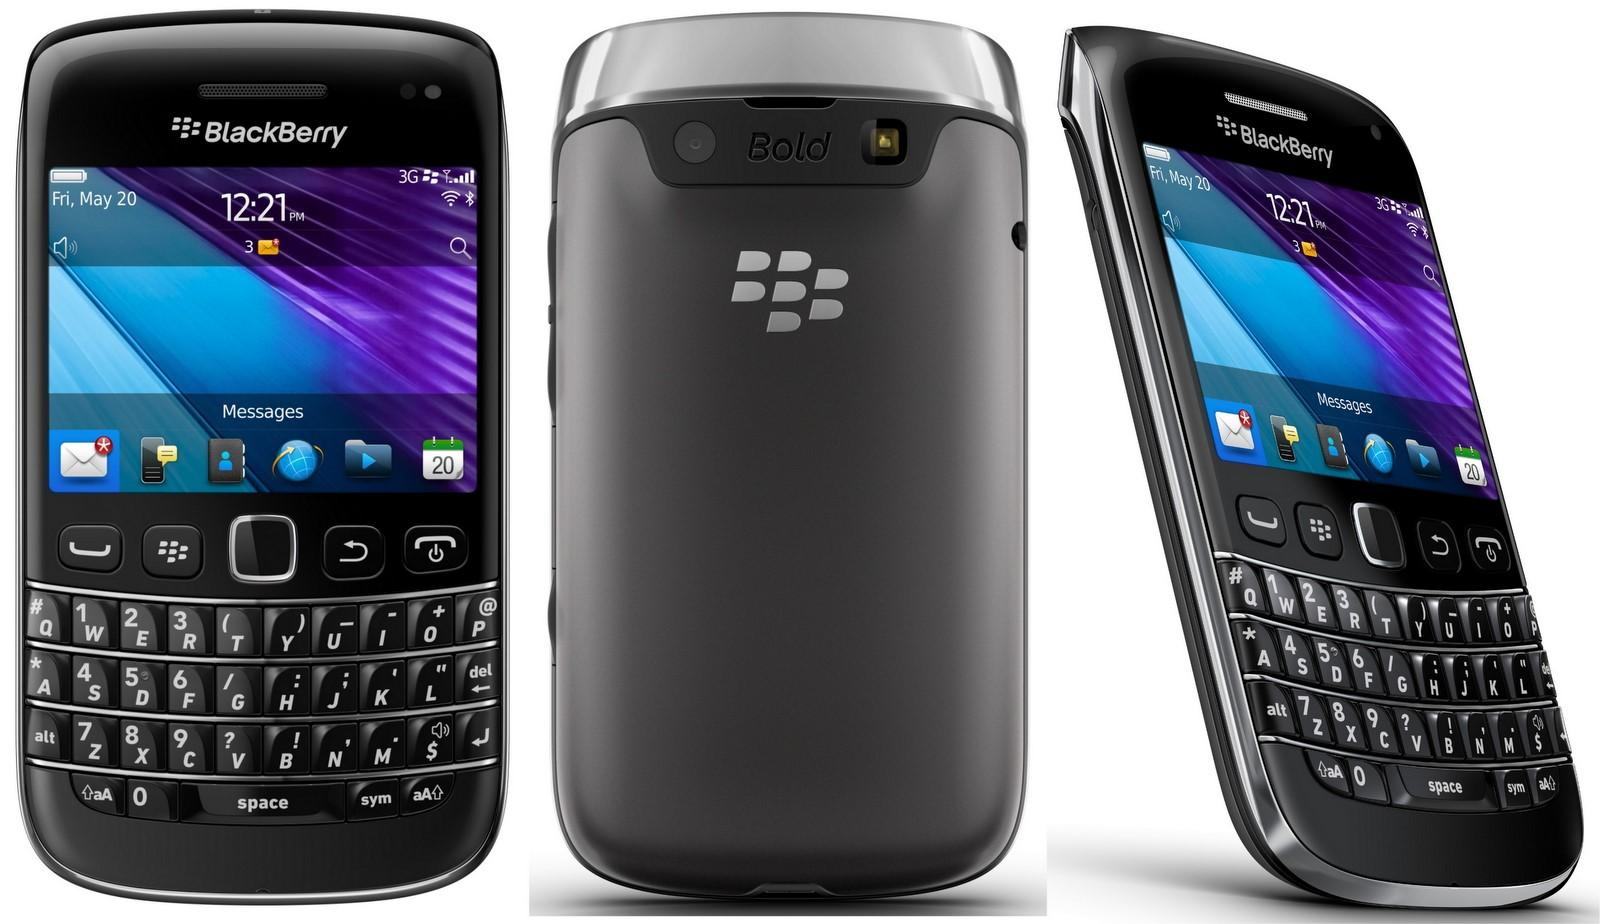 BLACKBERRY BOLD 9790 BLACK ORIGINAL BRIGHTSTART / BRIGHTPOINT